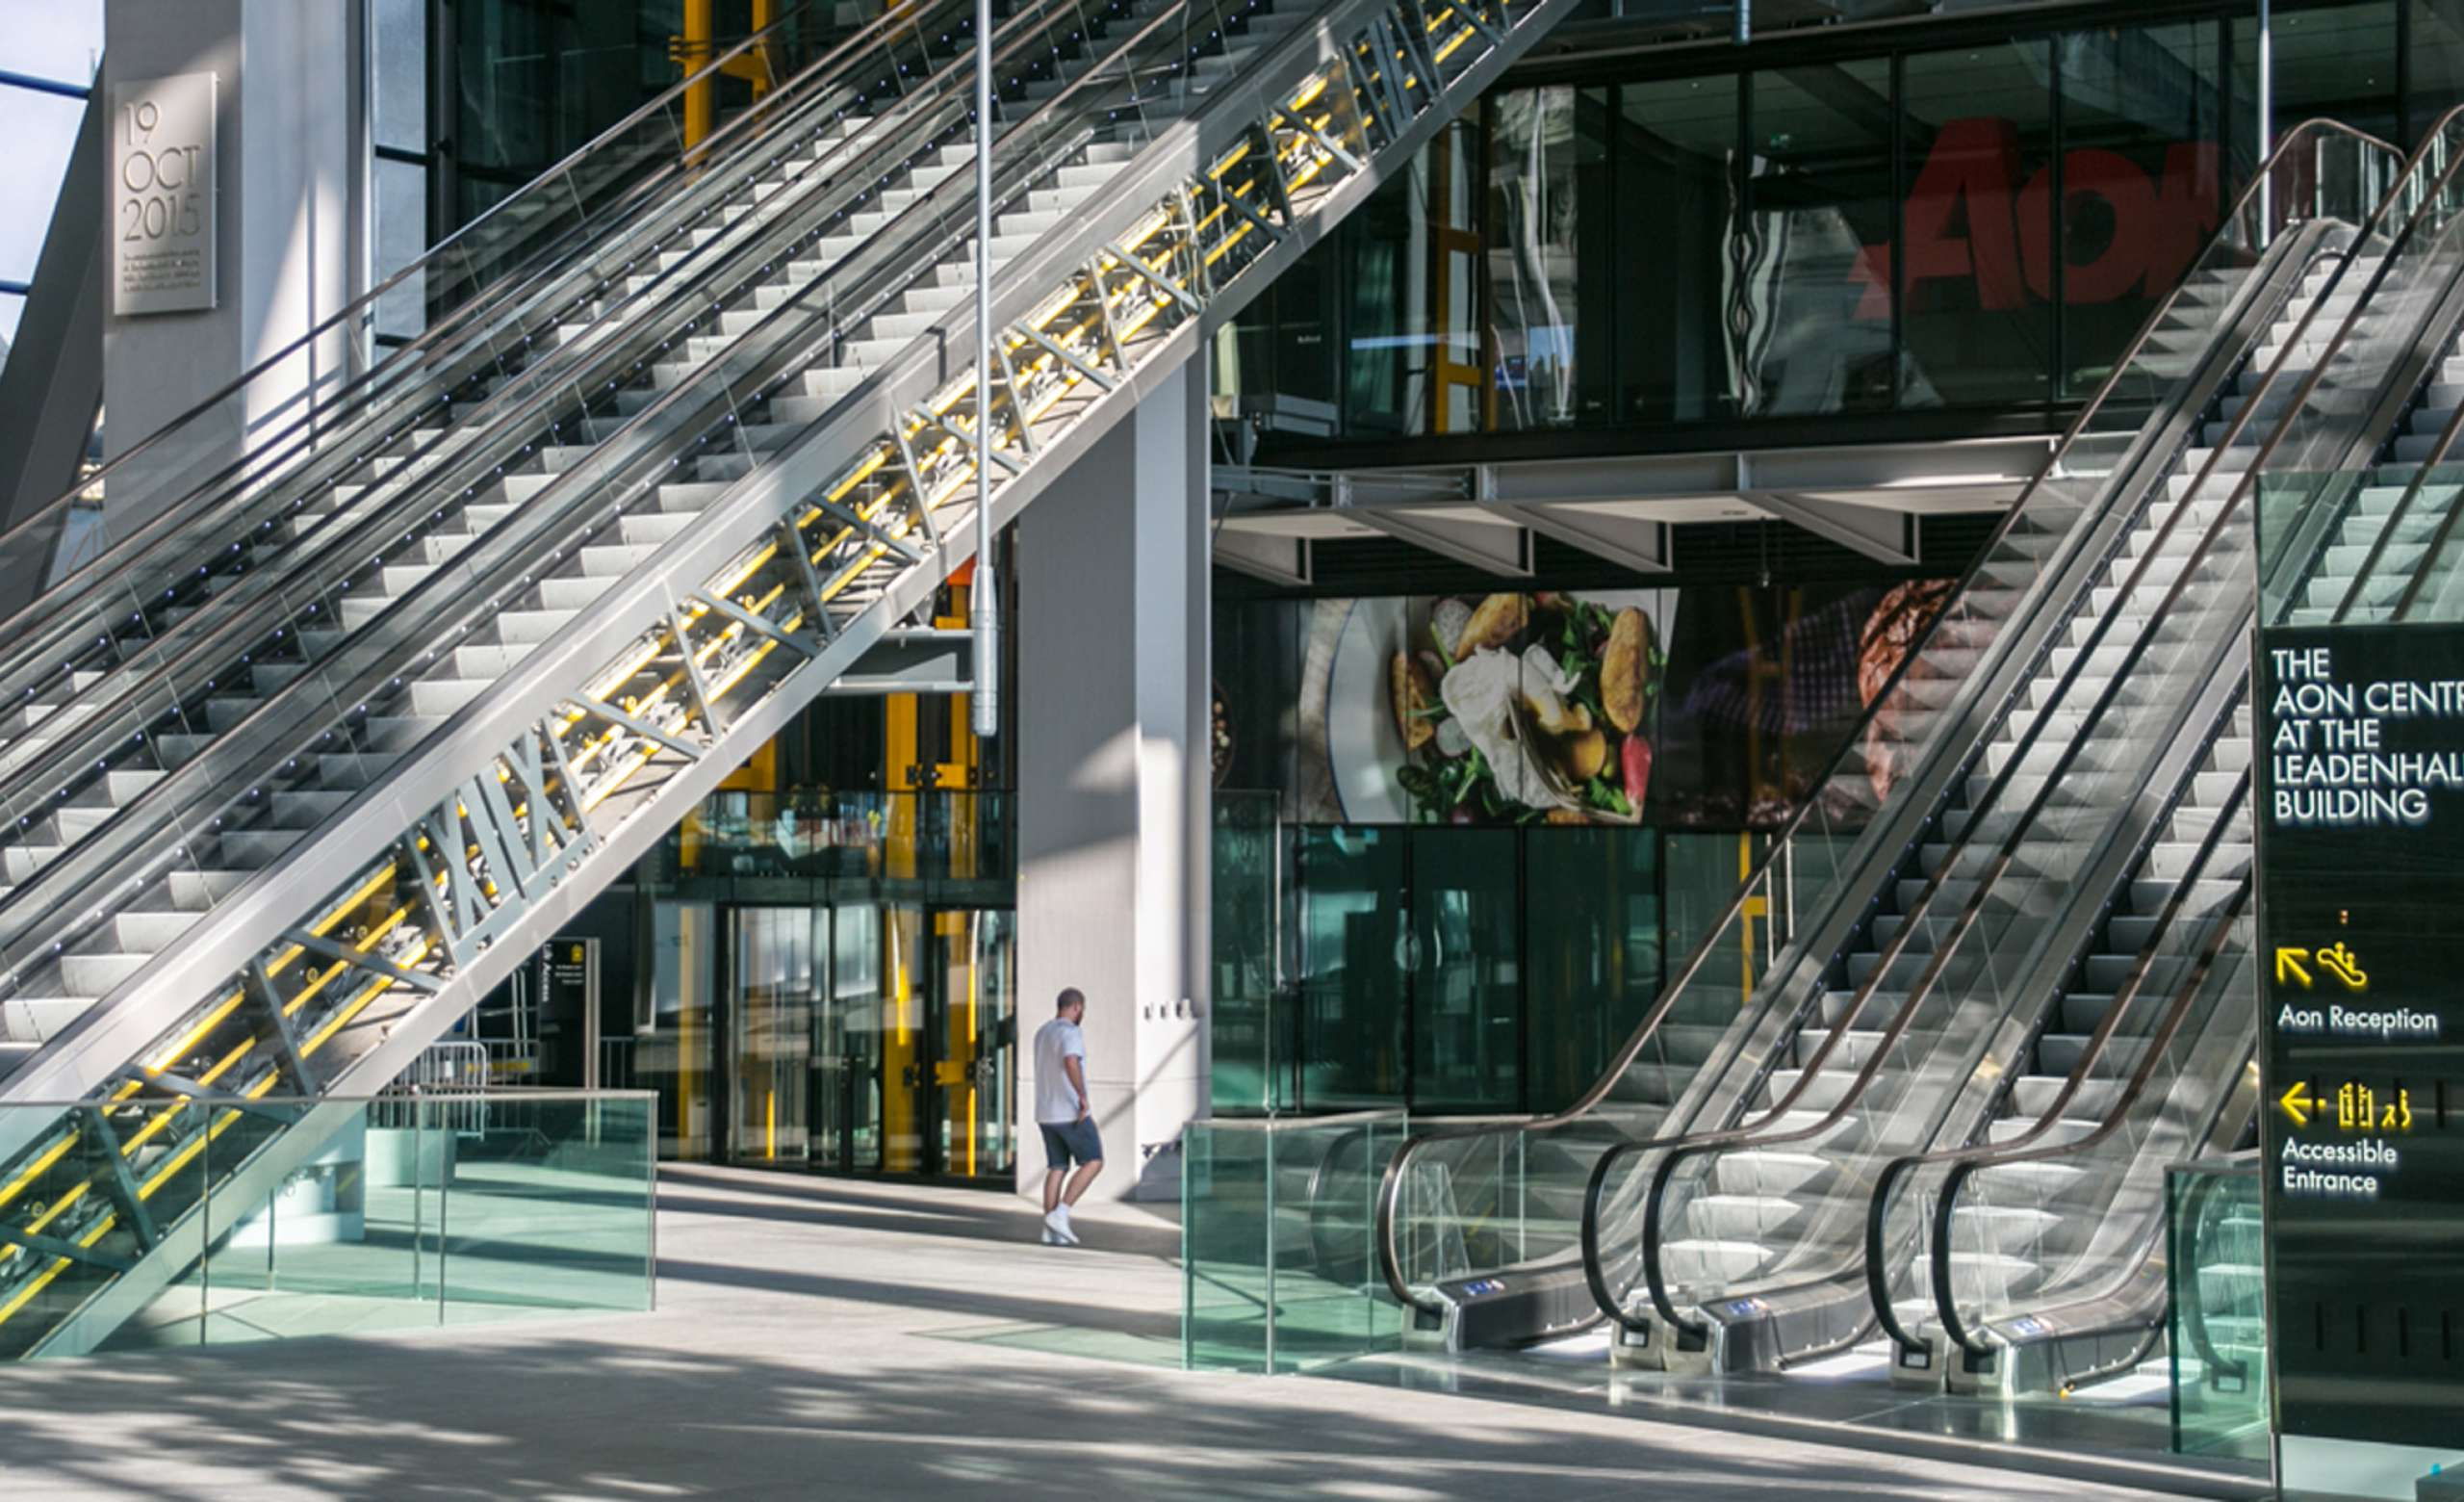 Kone, the elevator and escalator manufacturer needed to differentiate and rethink their maintenance service sales approach to encourage growth.